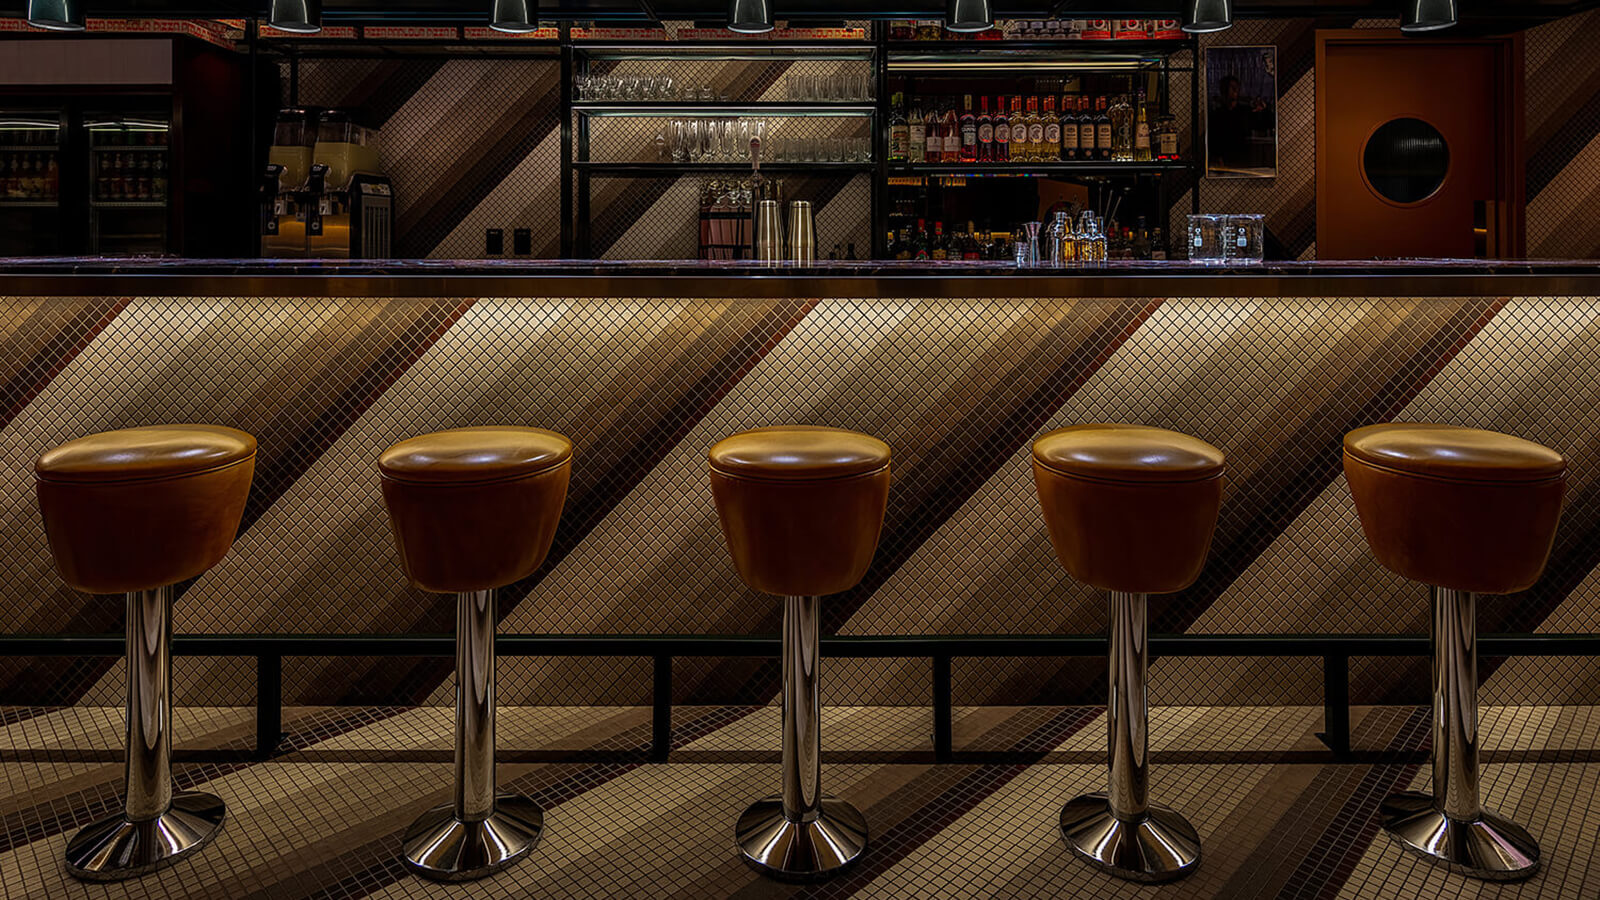 Photo of the bar, showing the brown vintage barstools and diagonal tile pattern